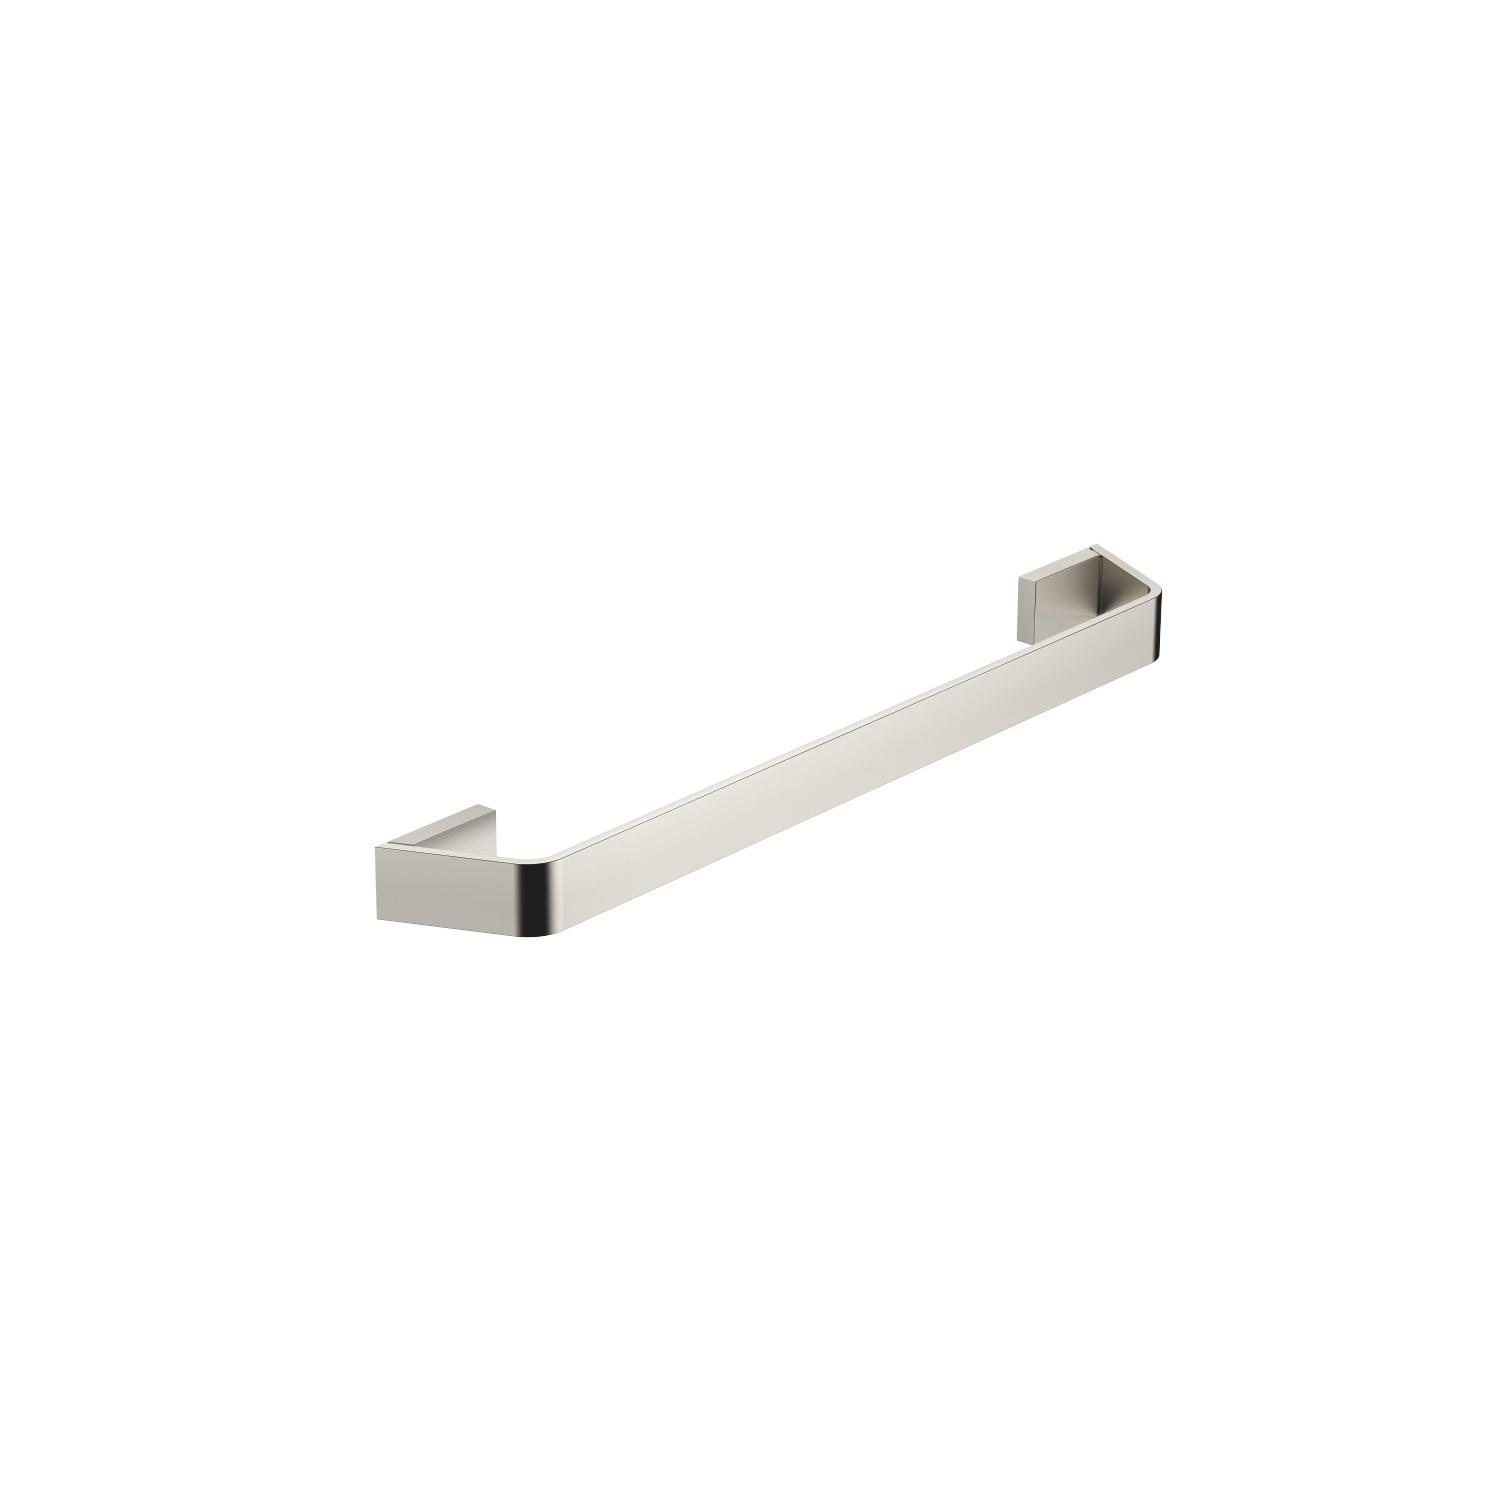 Towel bar - platinum matte - 83 045 705-06